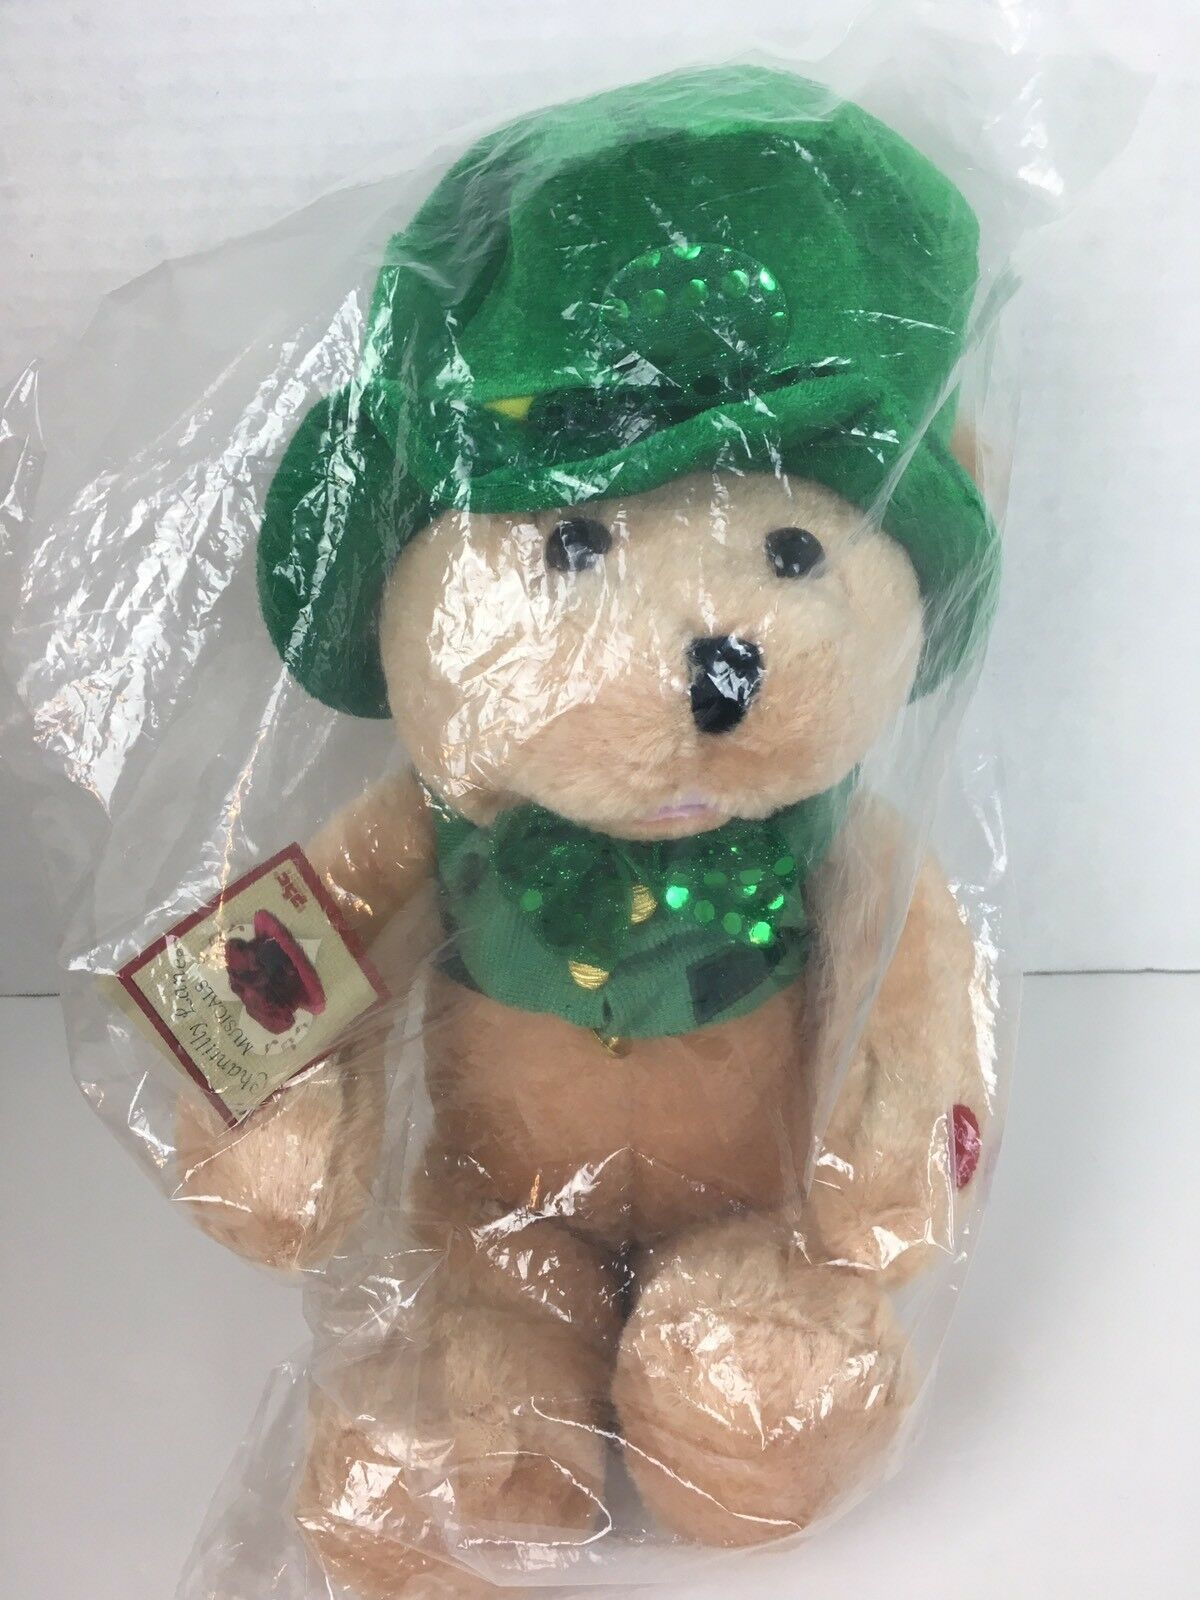 Chantilly Lane Musical Bears Shamrock Dancing When Irish Eyes Are Smiling New image 1